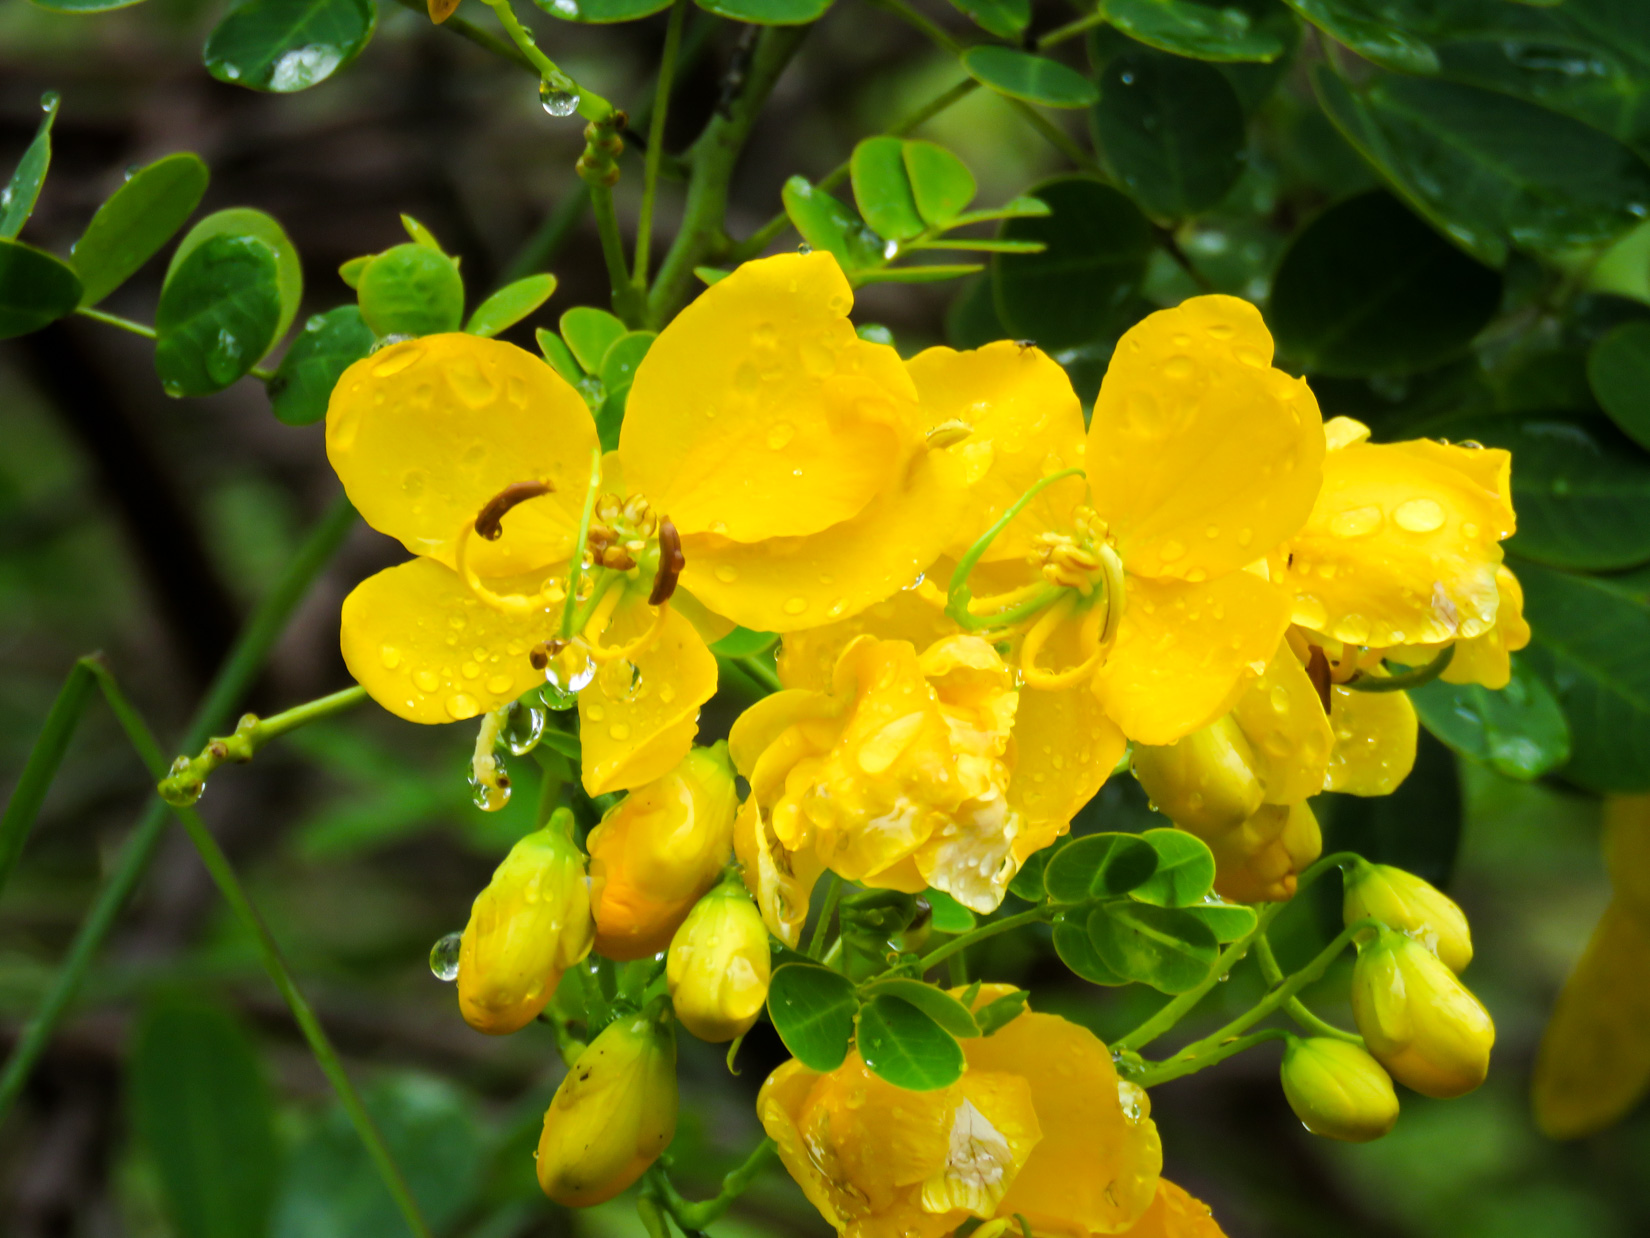 Wet Yellow Flowers